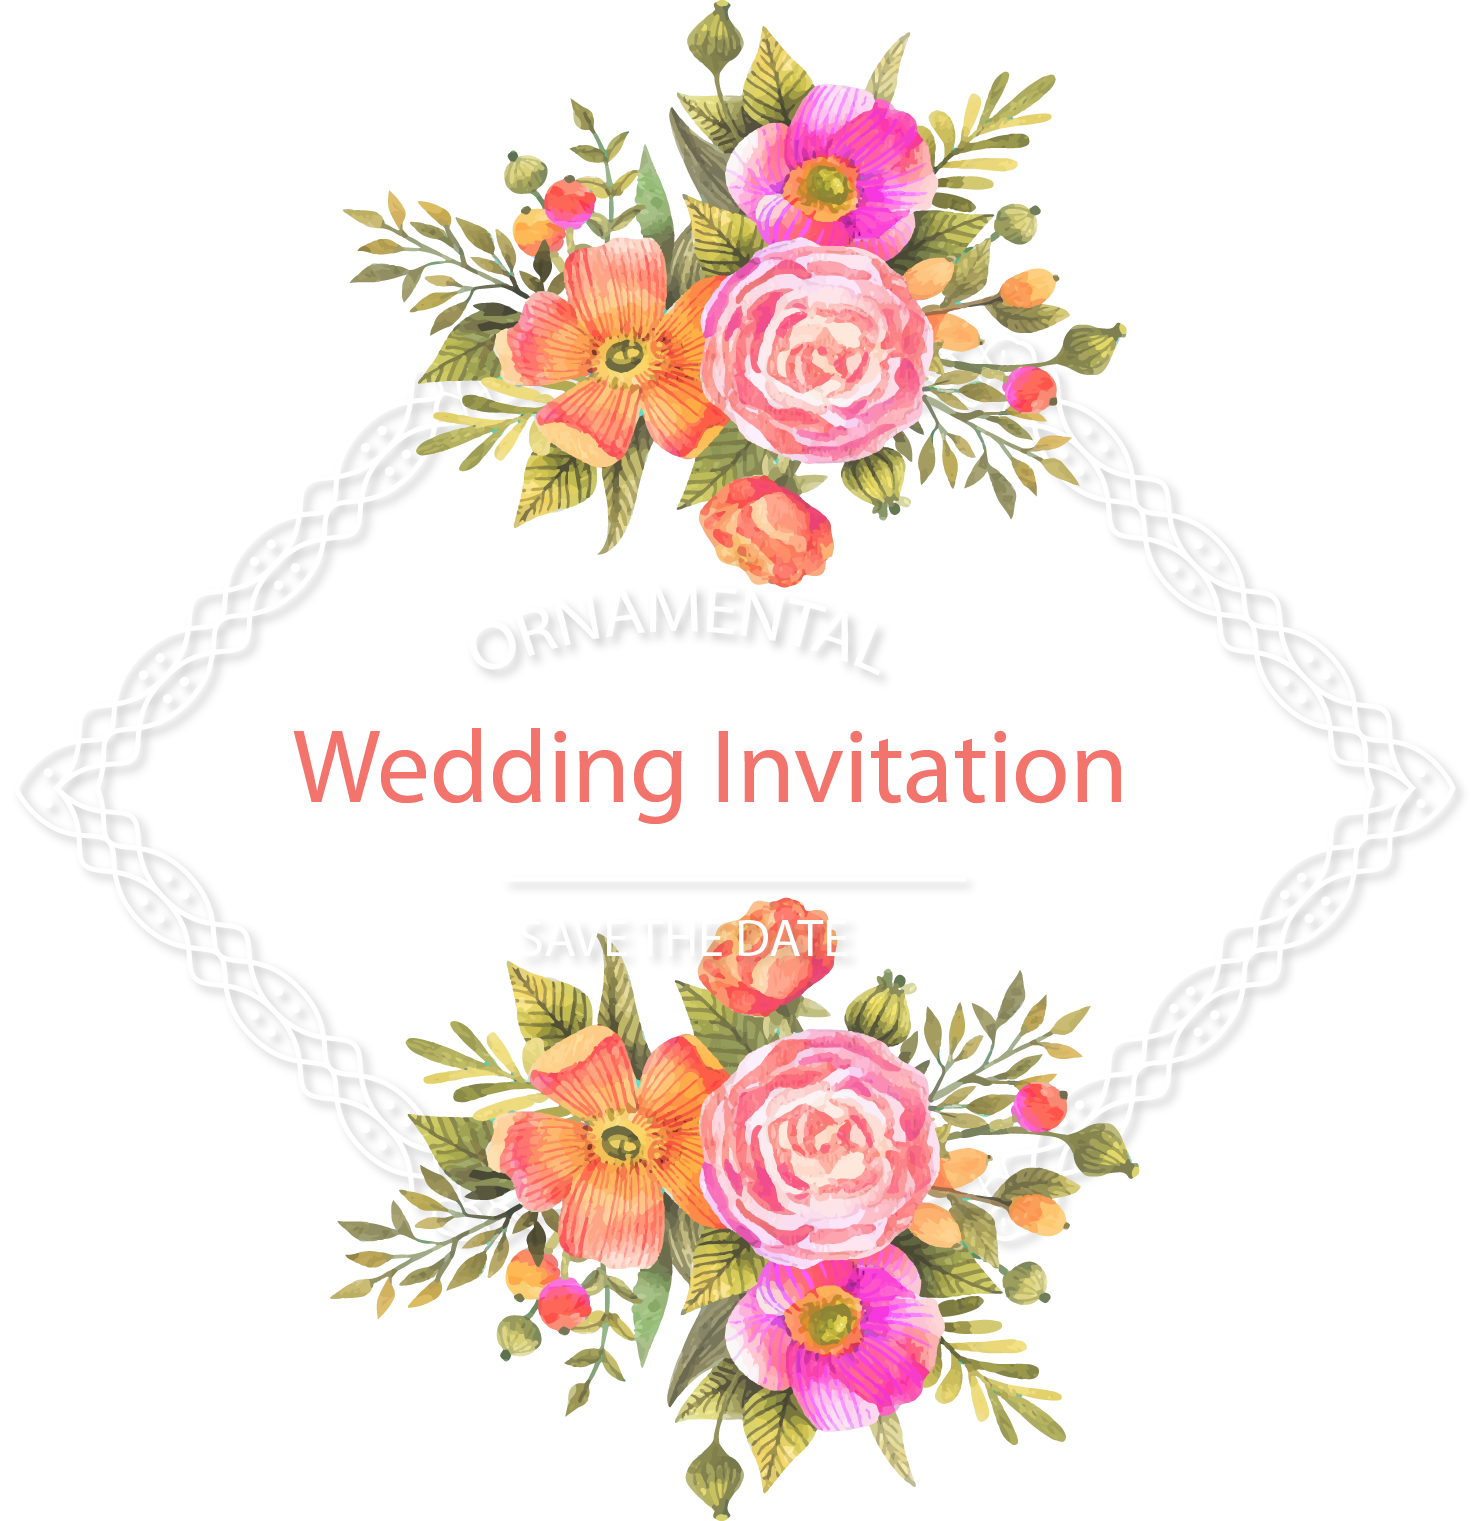 Free images of flowers to download svg freeuse Wedding invitation Flower Download - Fresh and beautiful flower ... svg freeuse